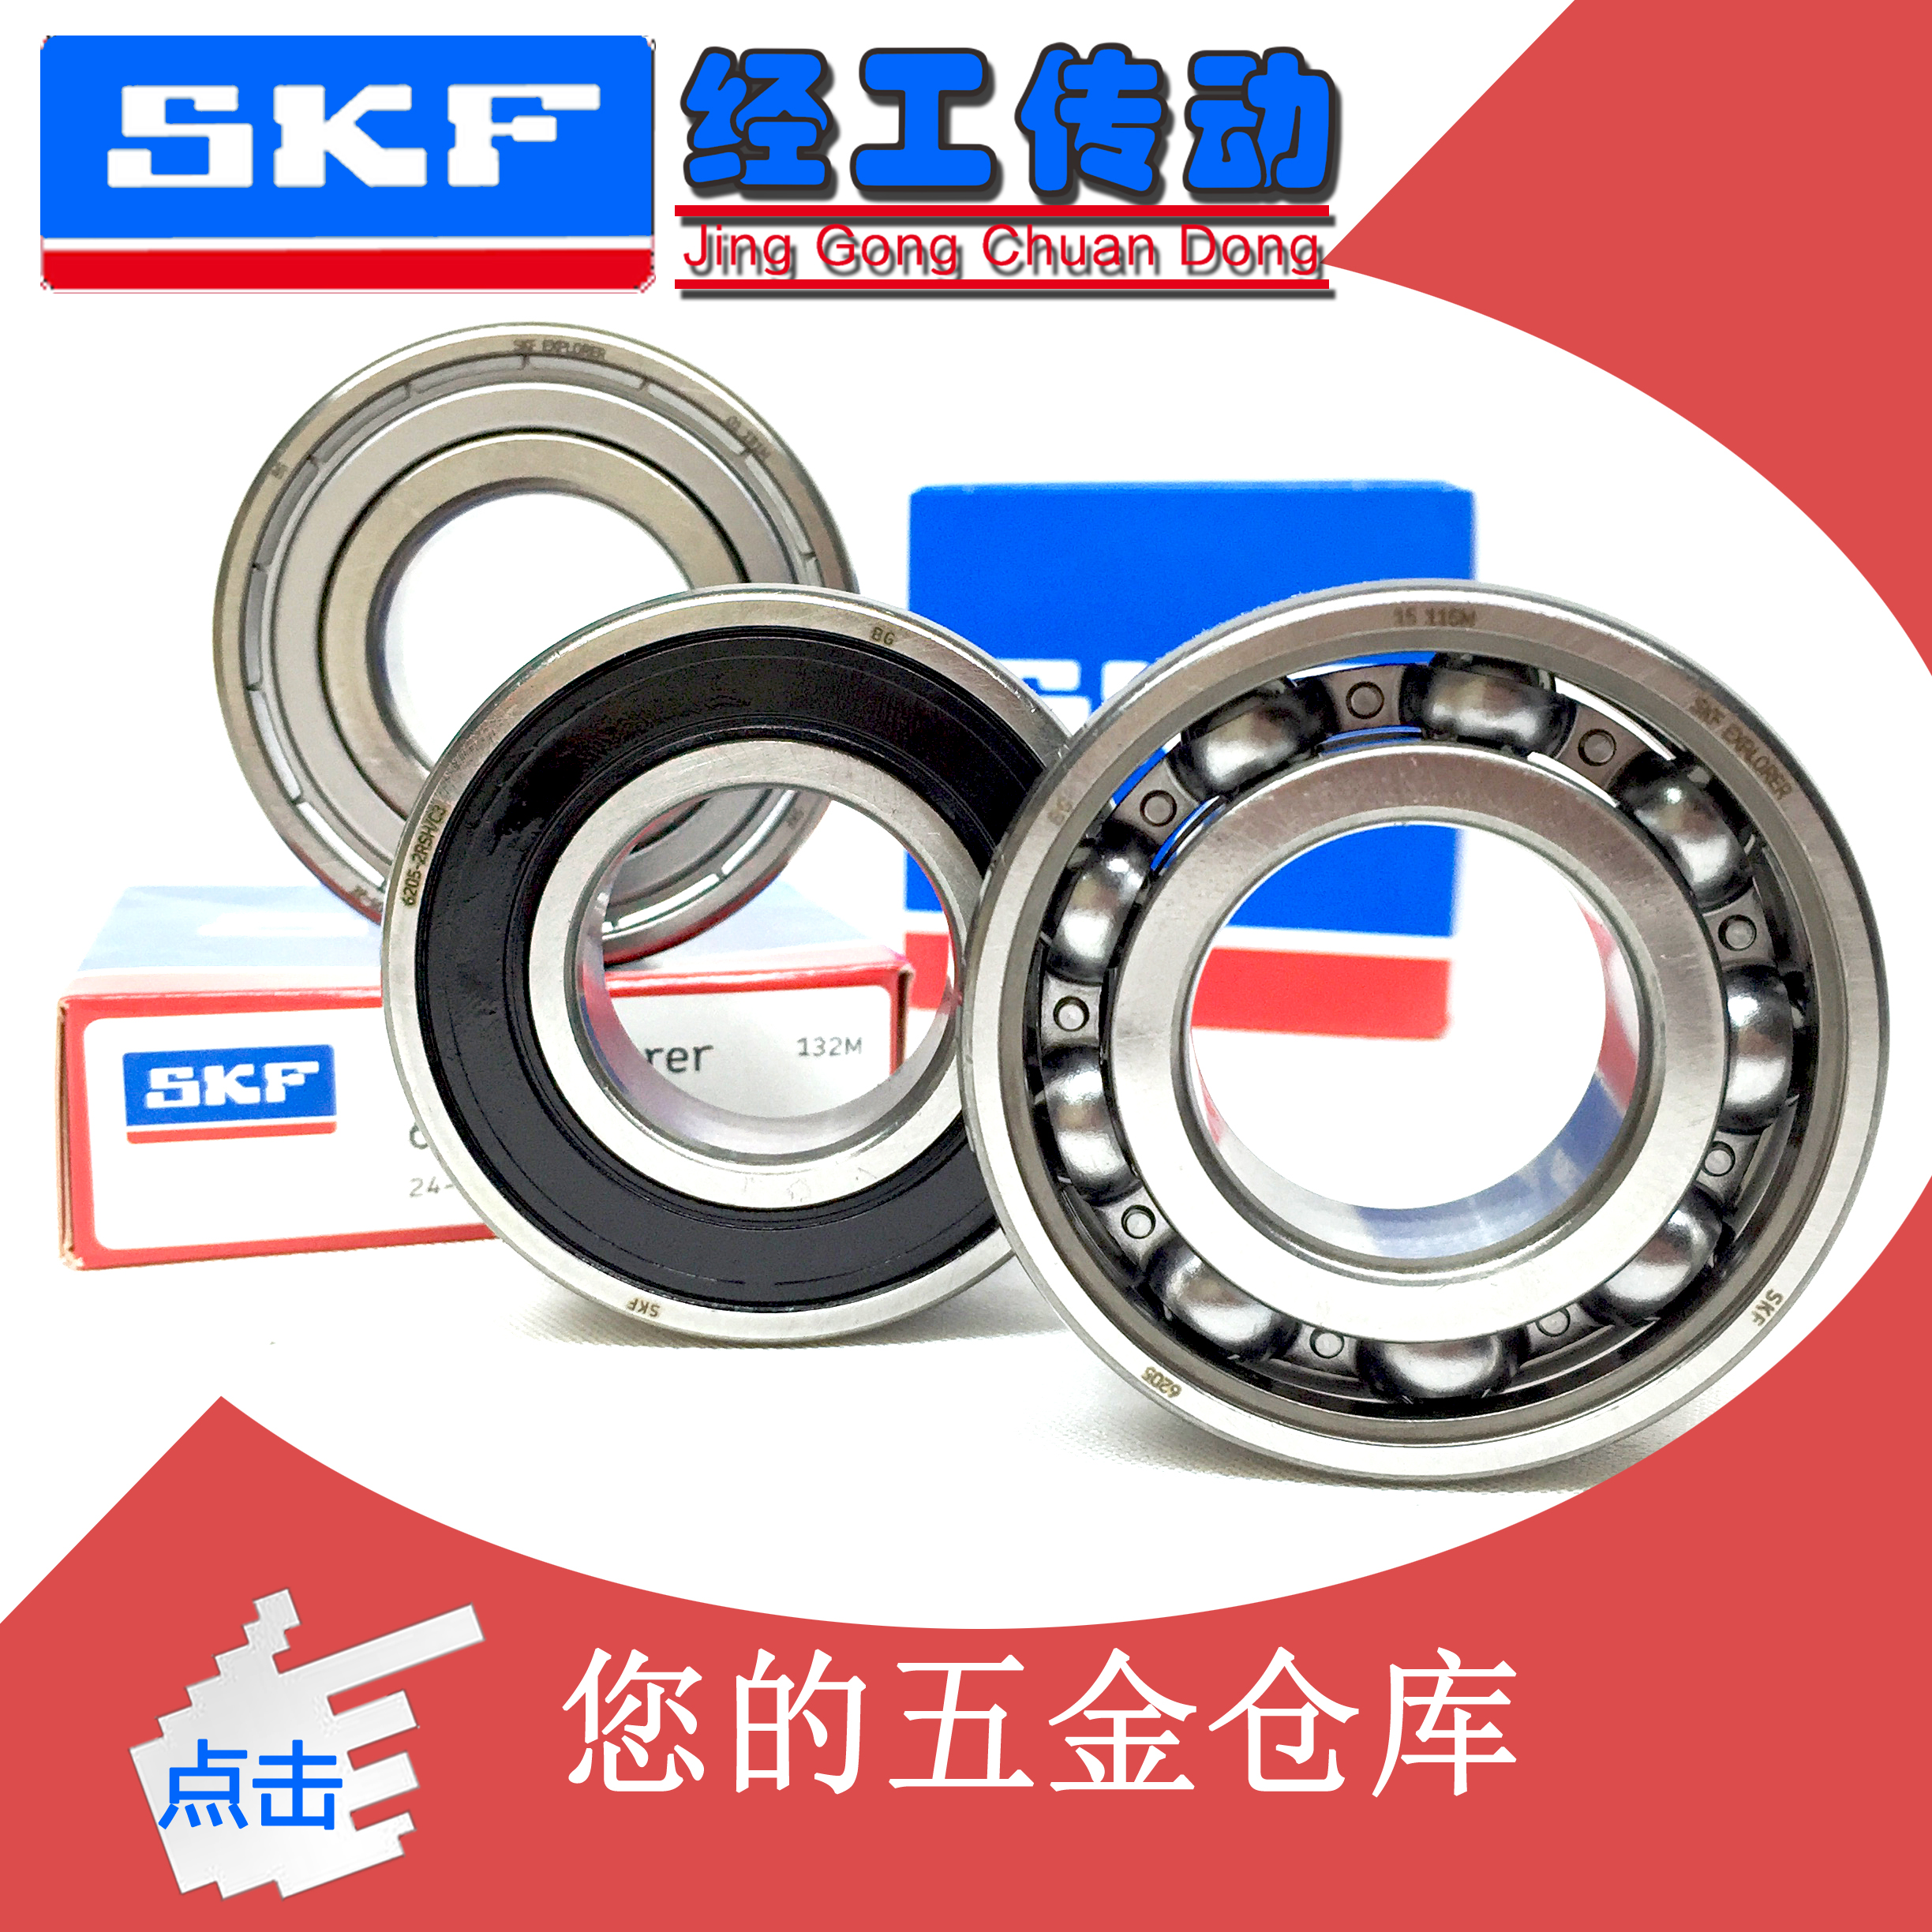 Skf bearings imported from sweden genuine original 6319 z rs m vl0241 c3 c4